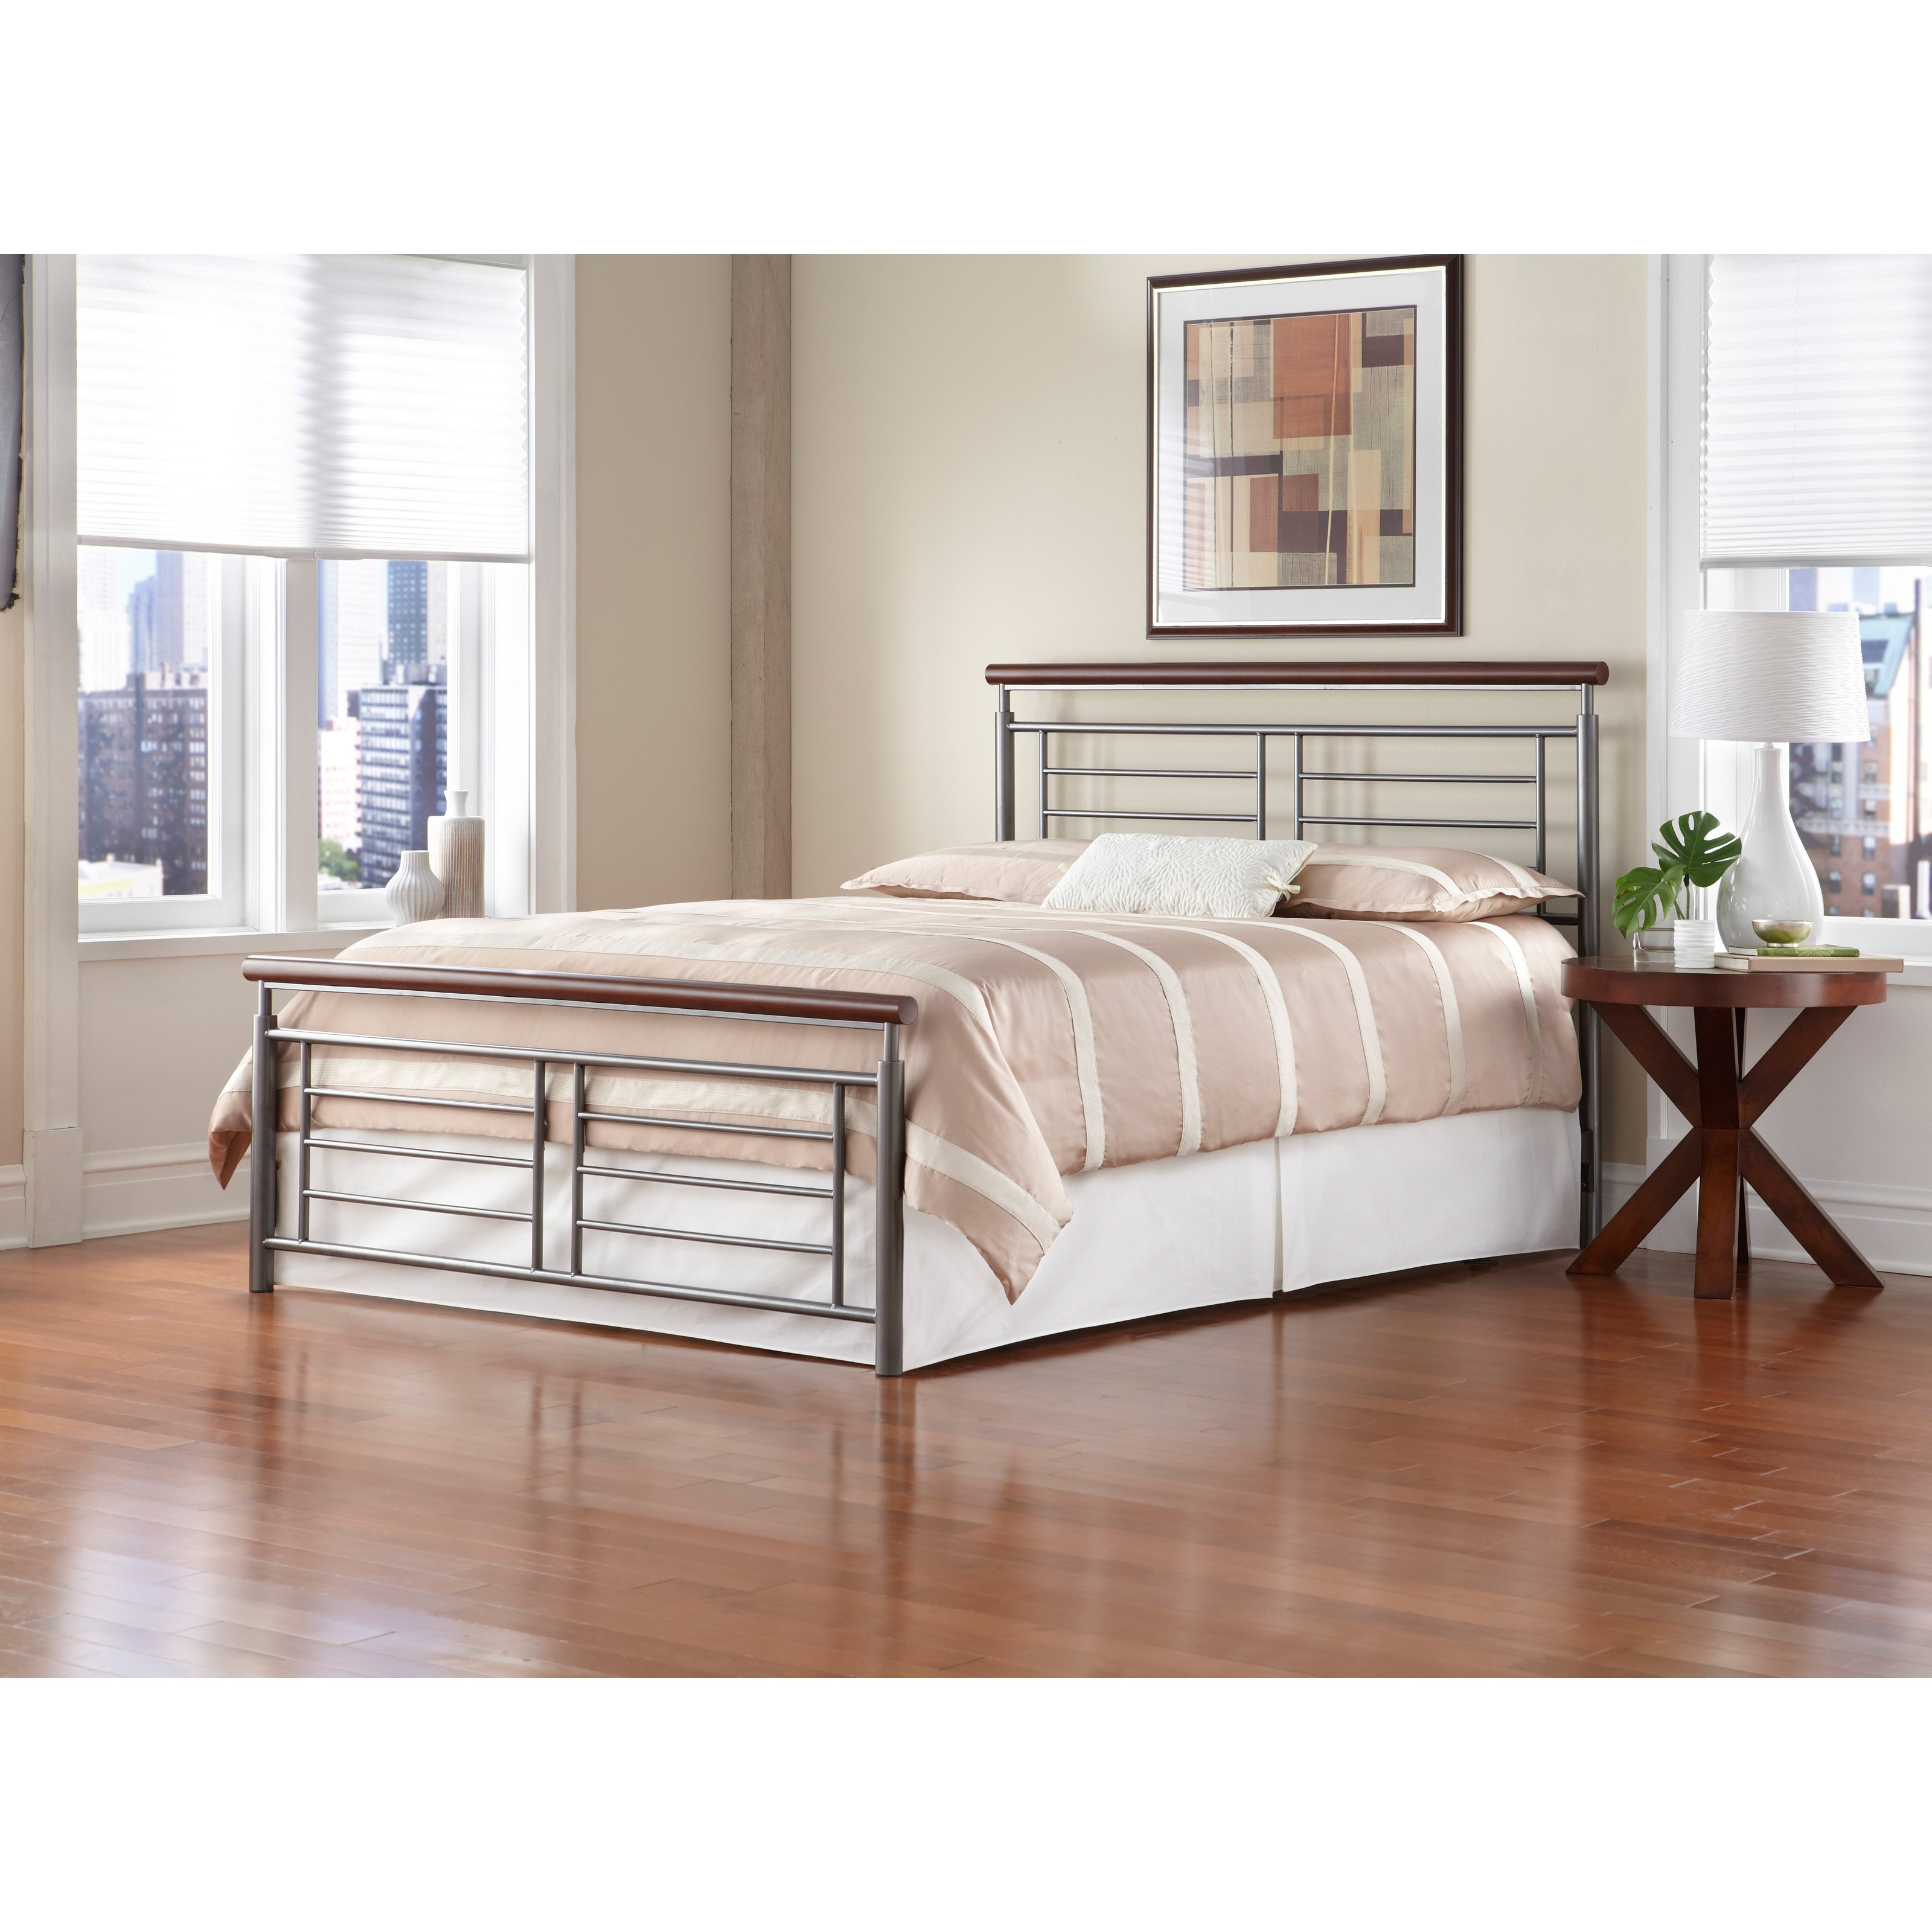 Fashion Bed Group Fontane Bed